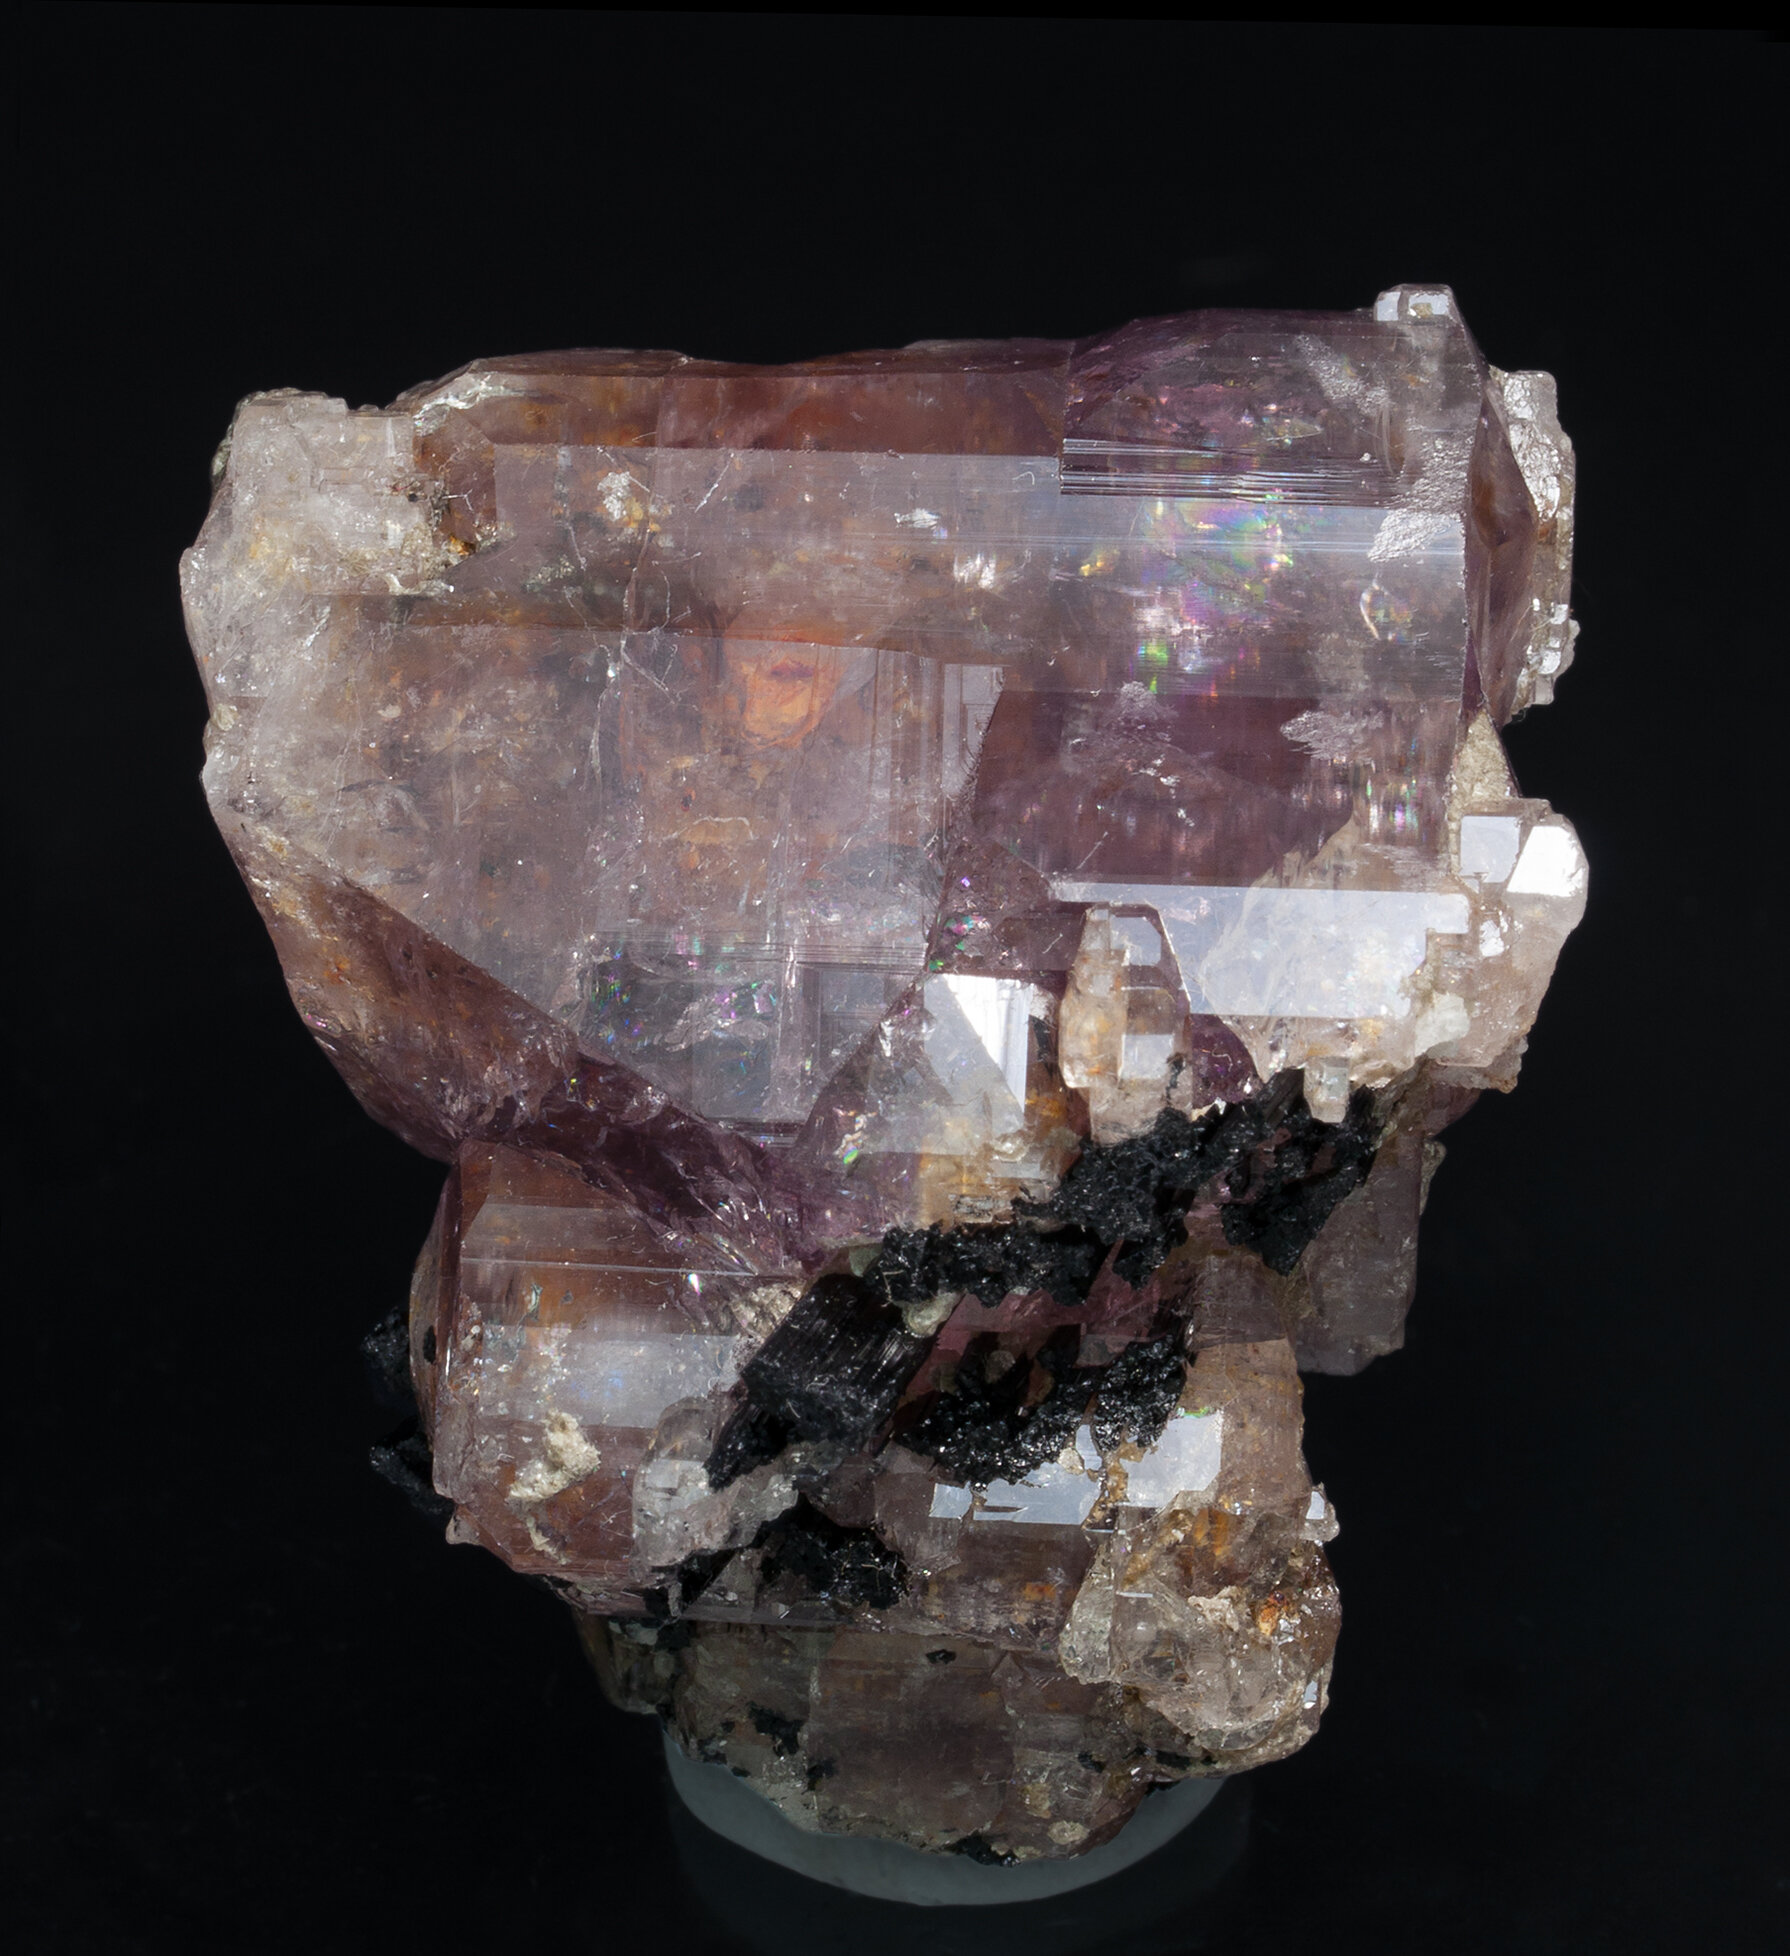 specimens/s_imagesZ2/Fluorapatite-TC30Z2f.jpg